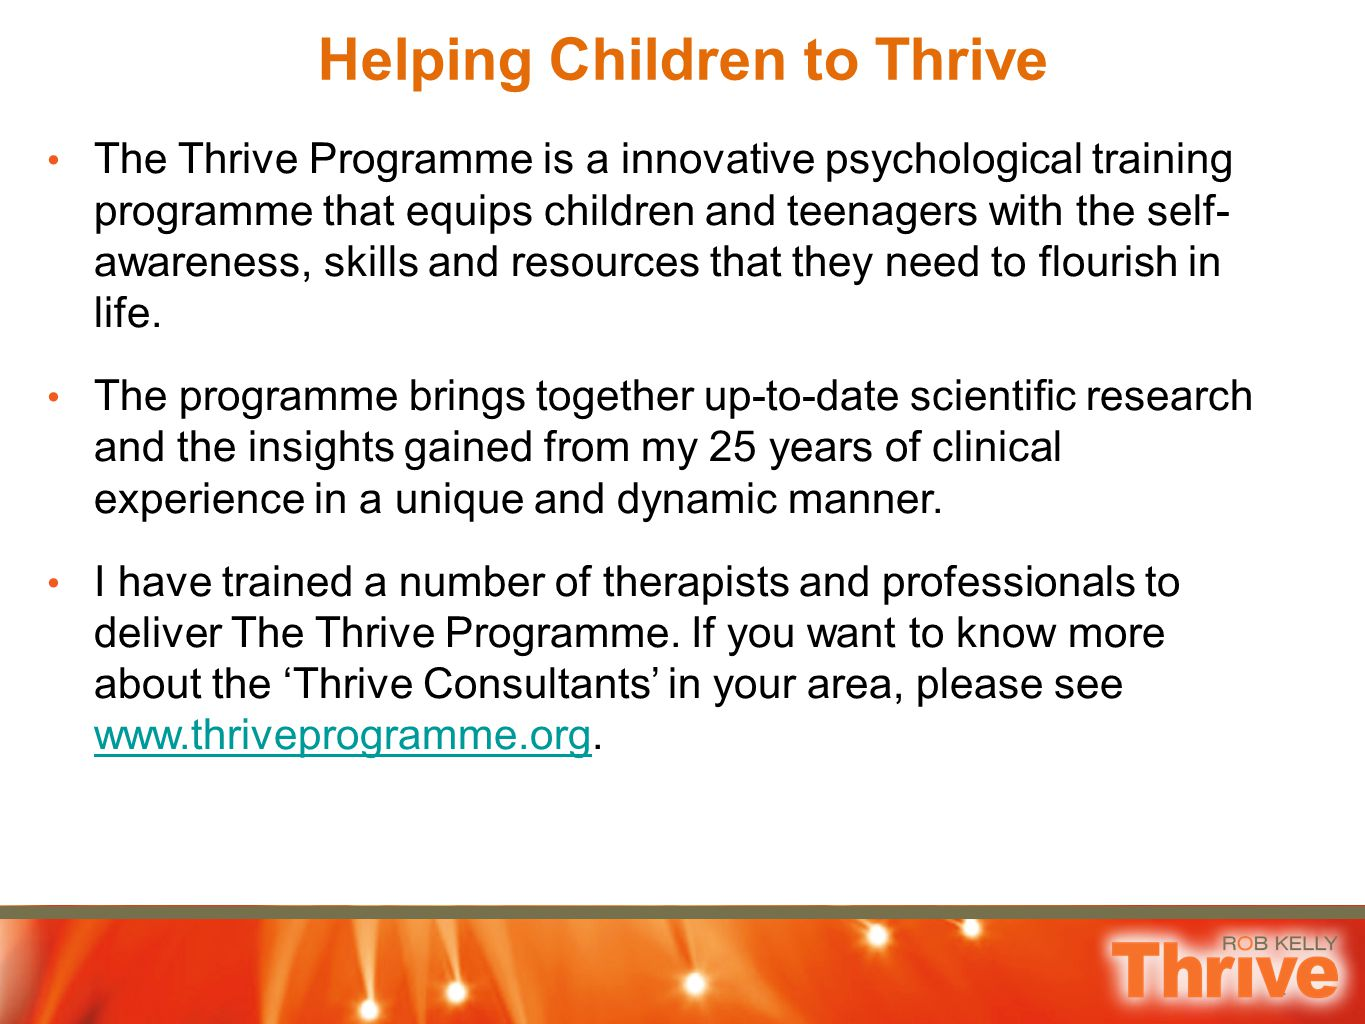 2 The Thrive Programme is a innovative psychological training programme that equips children and teenagers with the self- awareness, skills and resour